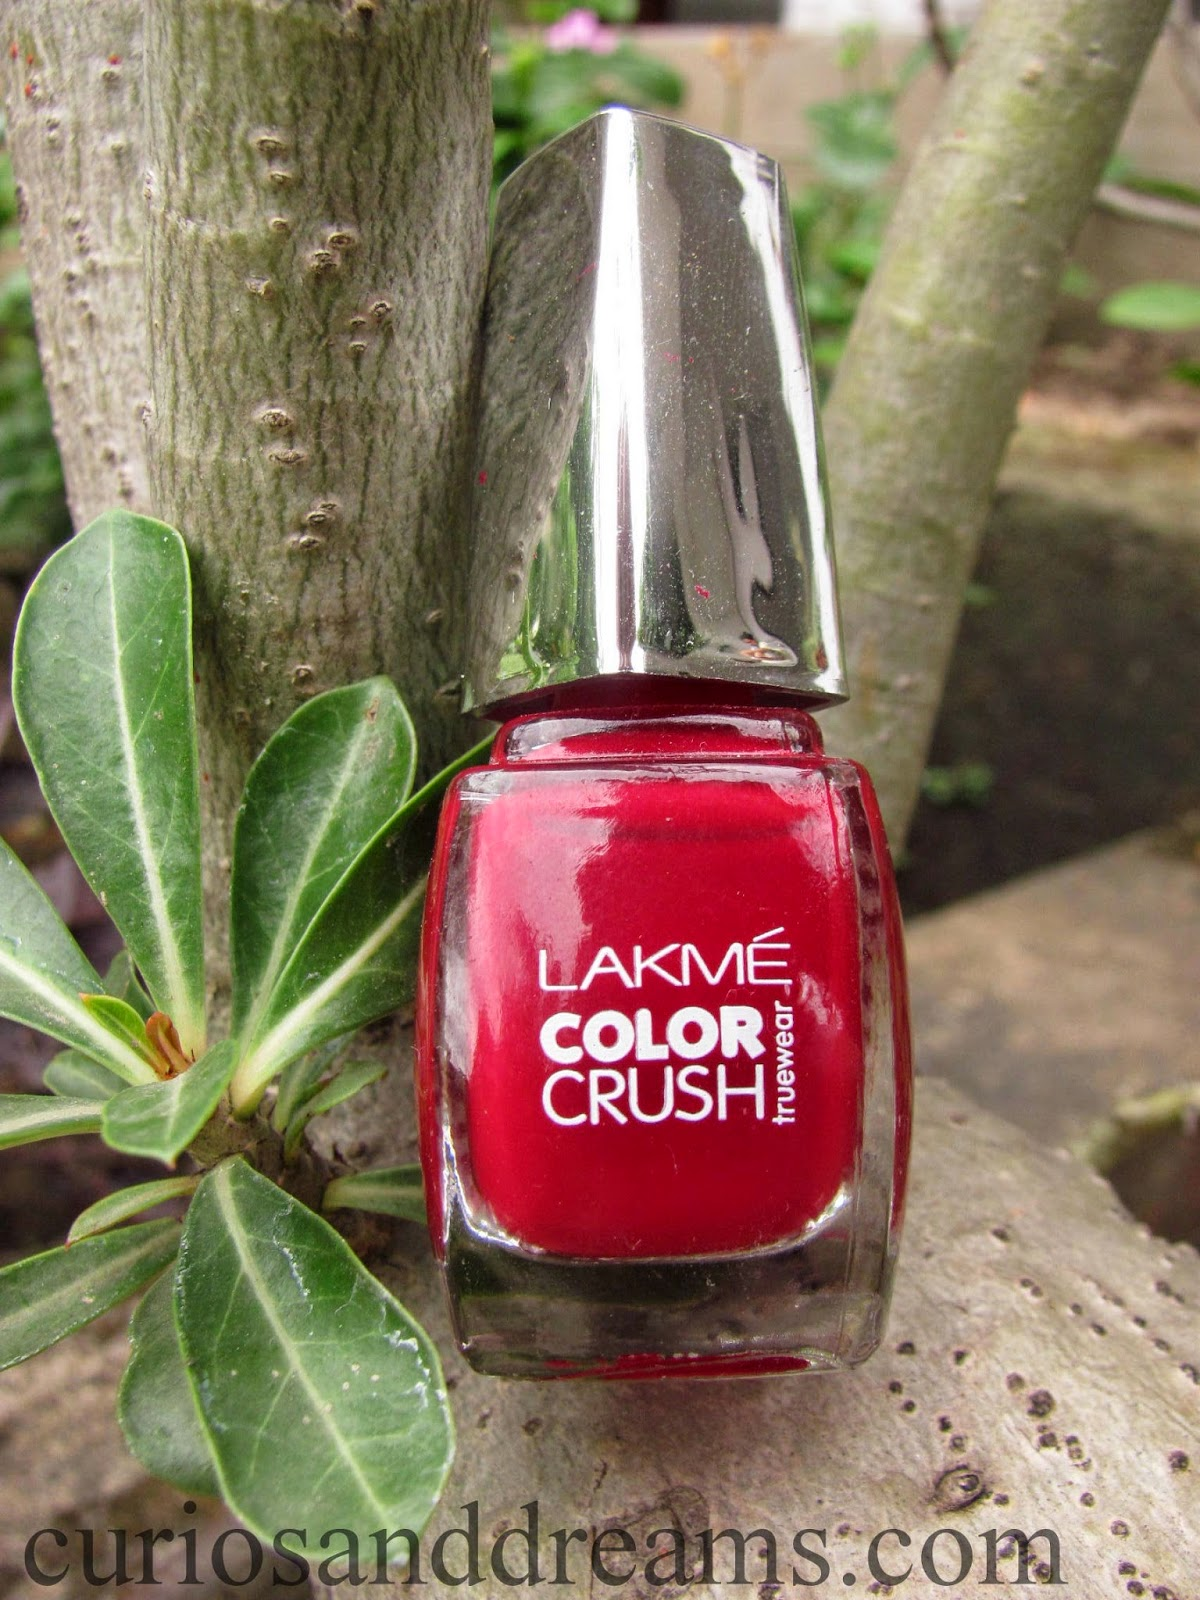 Lakme Color Crush Nail Polish 25 review, Lakme Color Crush Nail Polish 25,